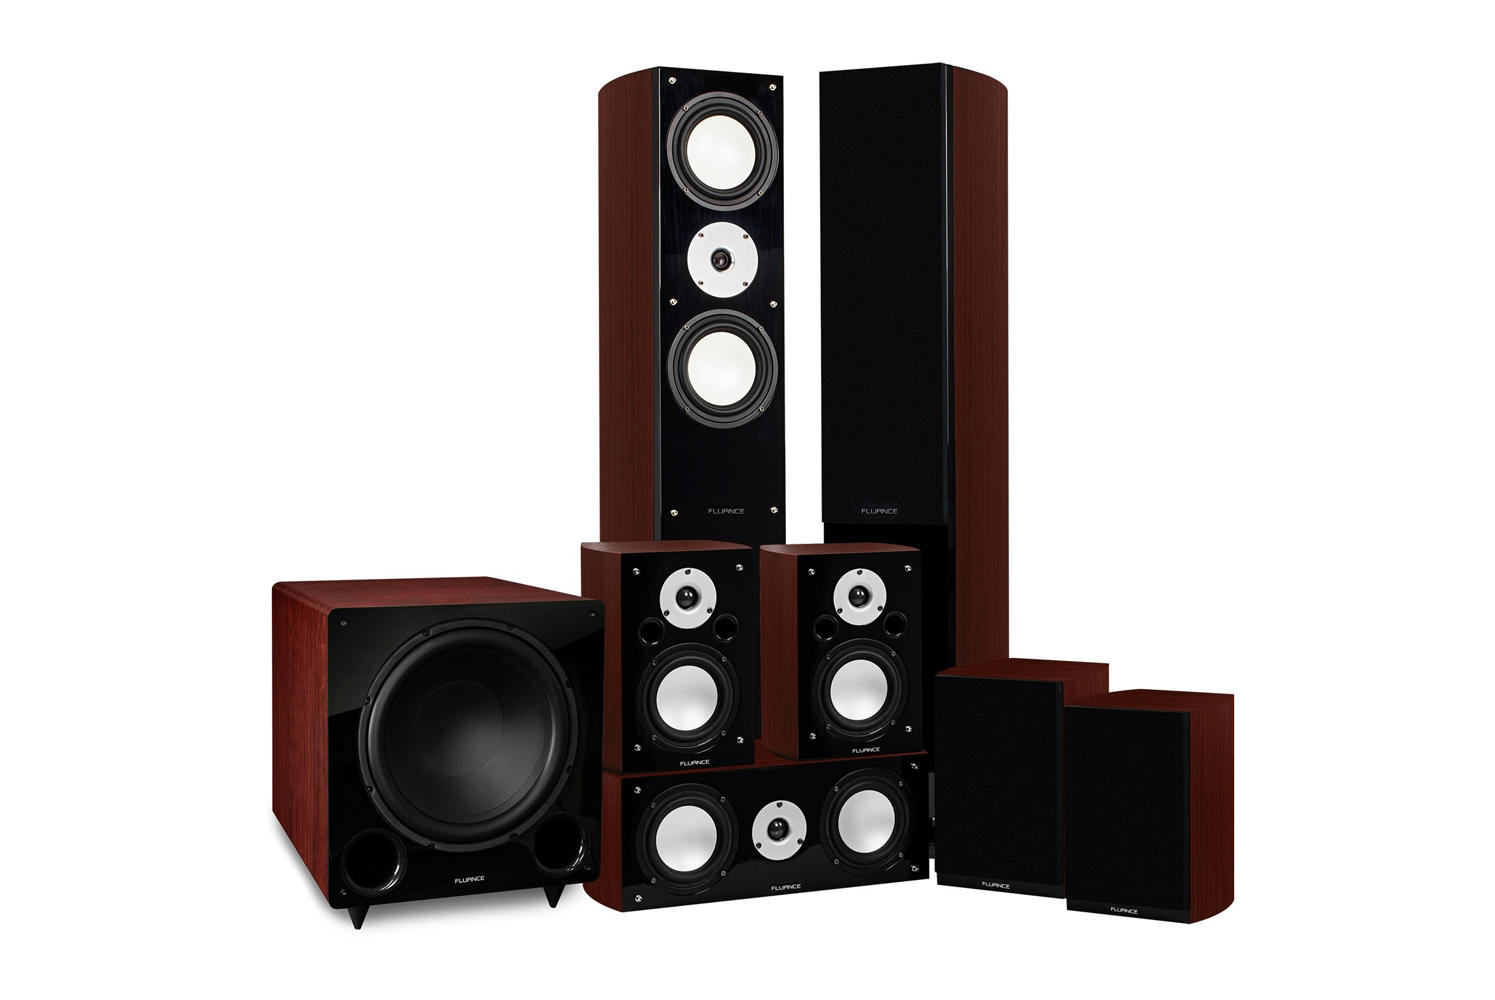 Fluance Reference Series 7.1 system